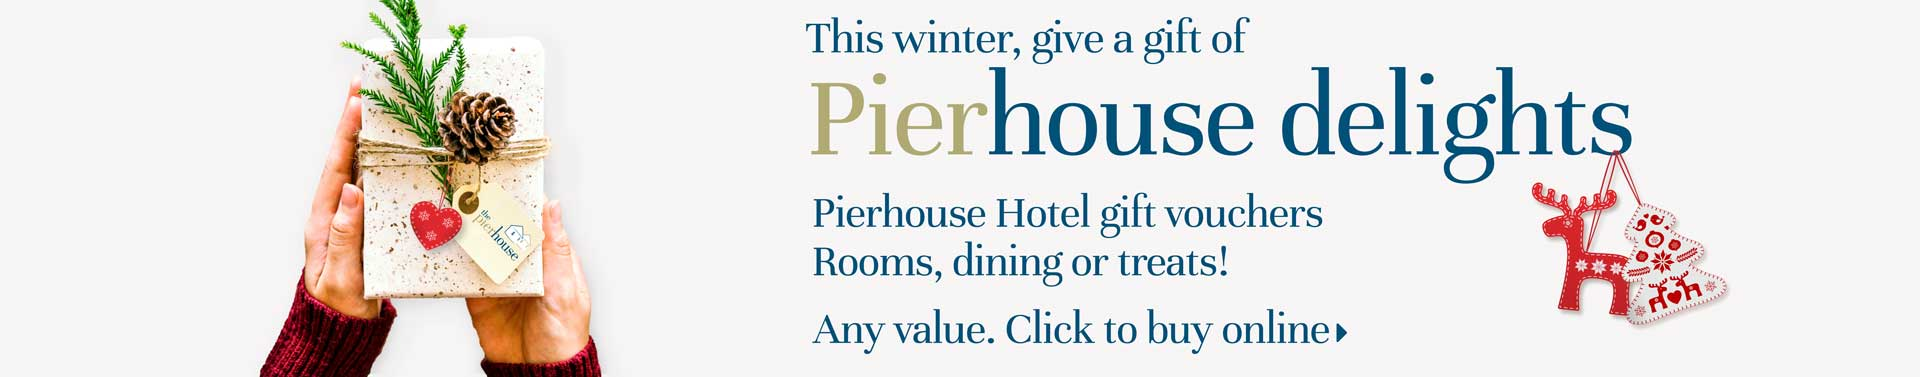 Pierhouse Hotel gift vouchers - buy online